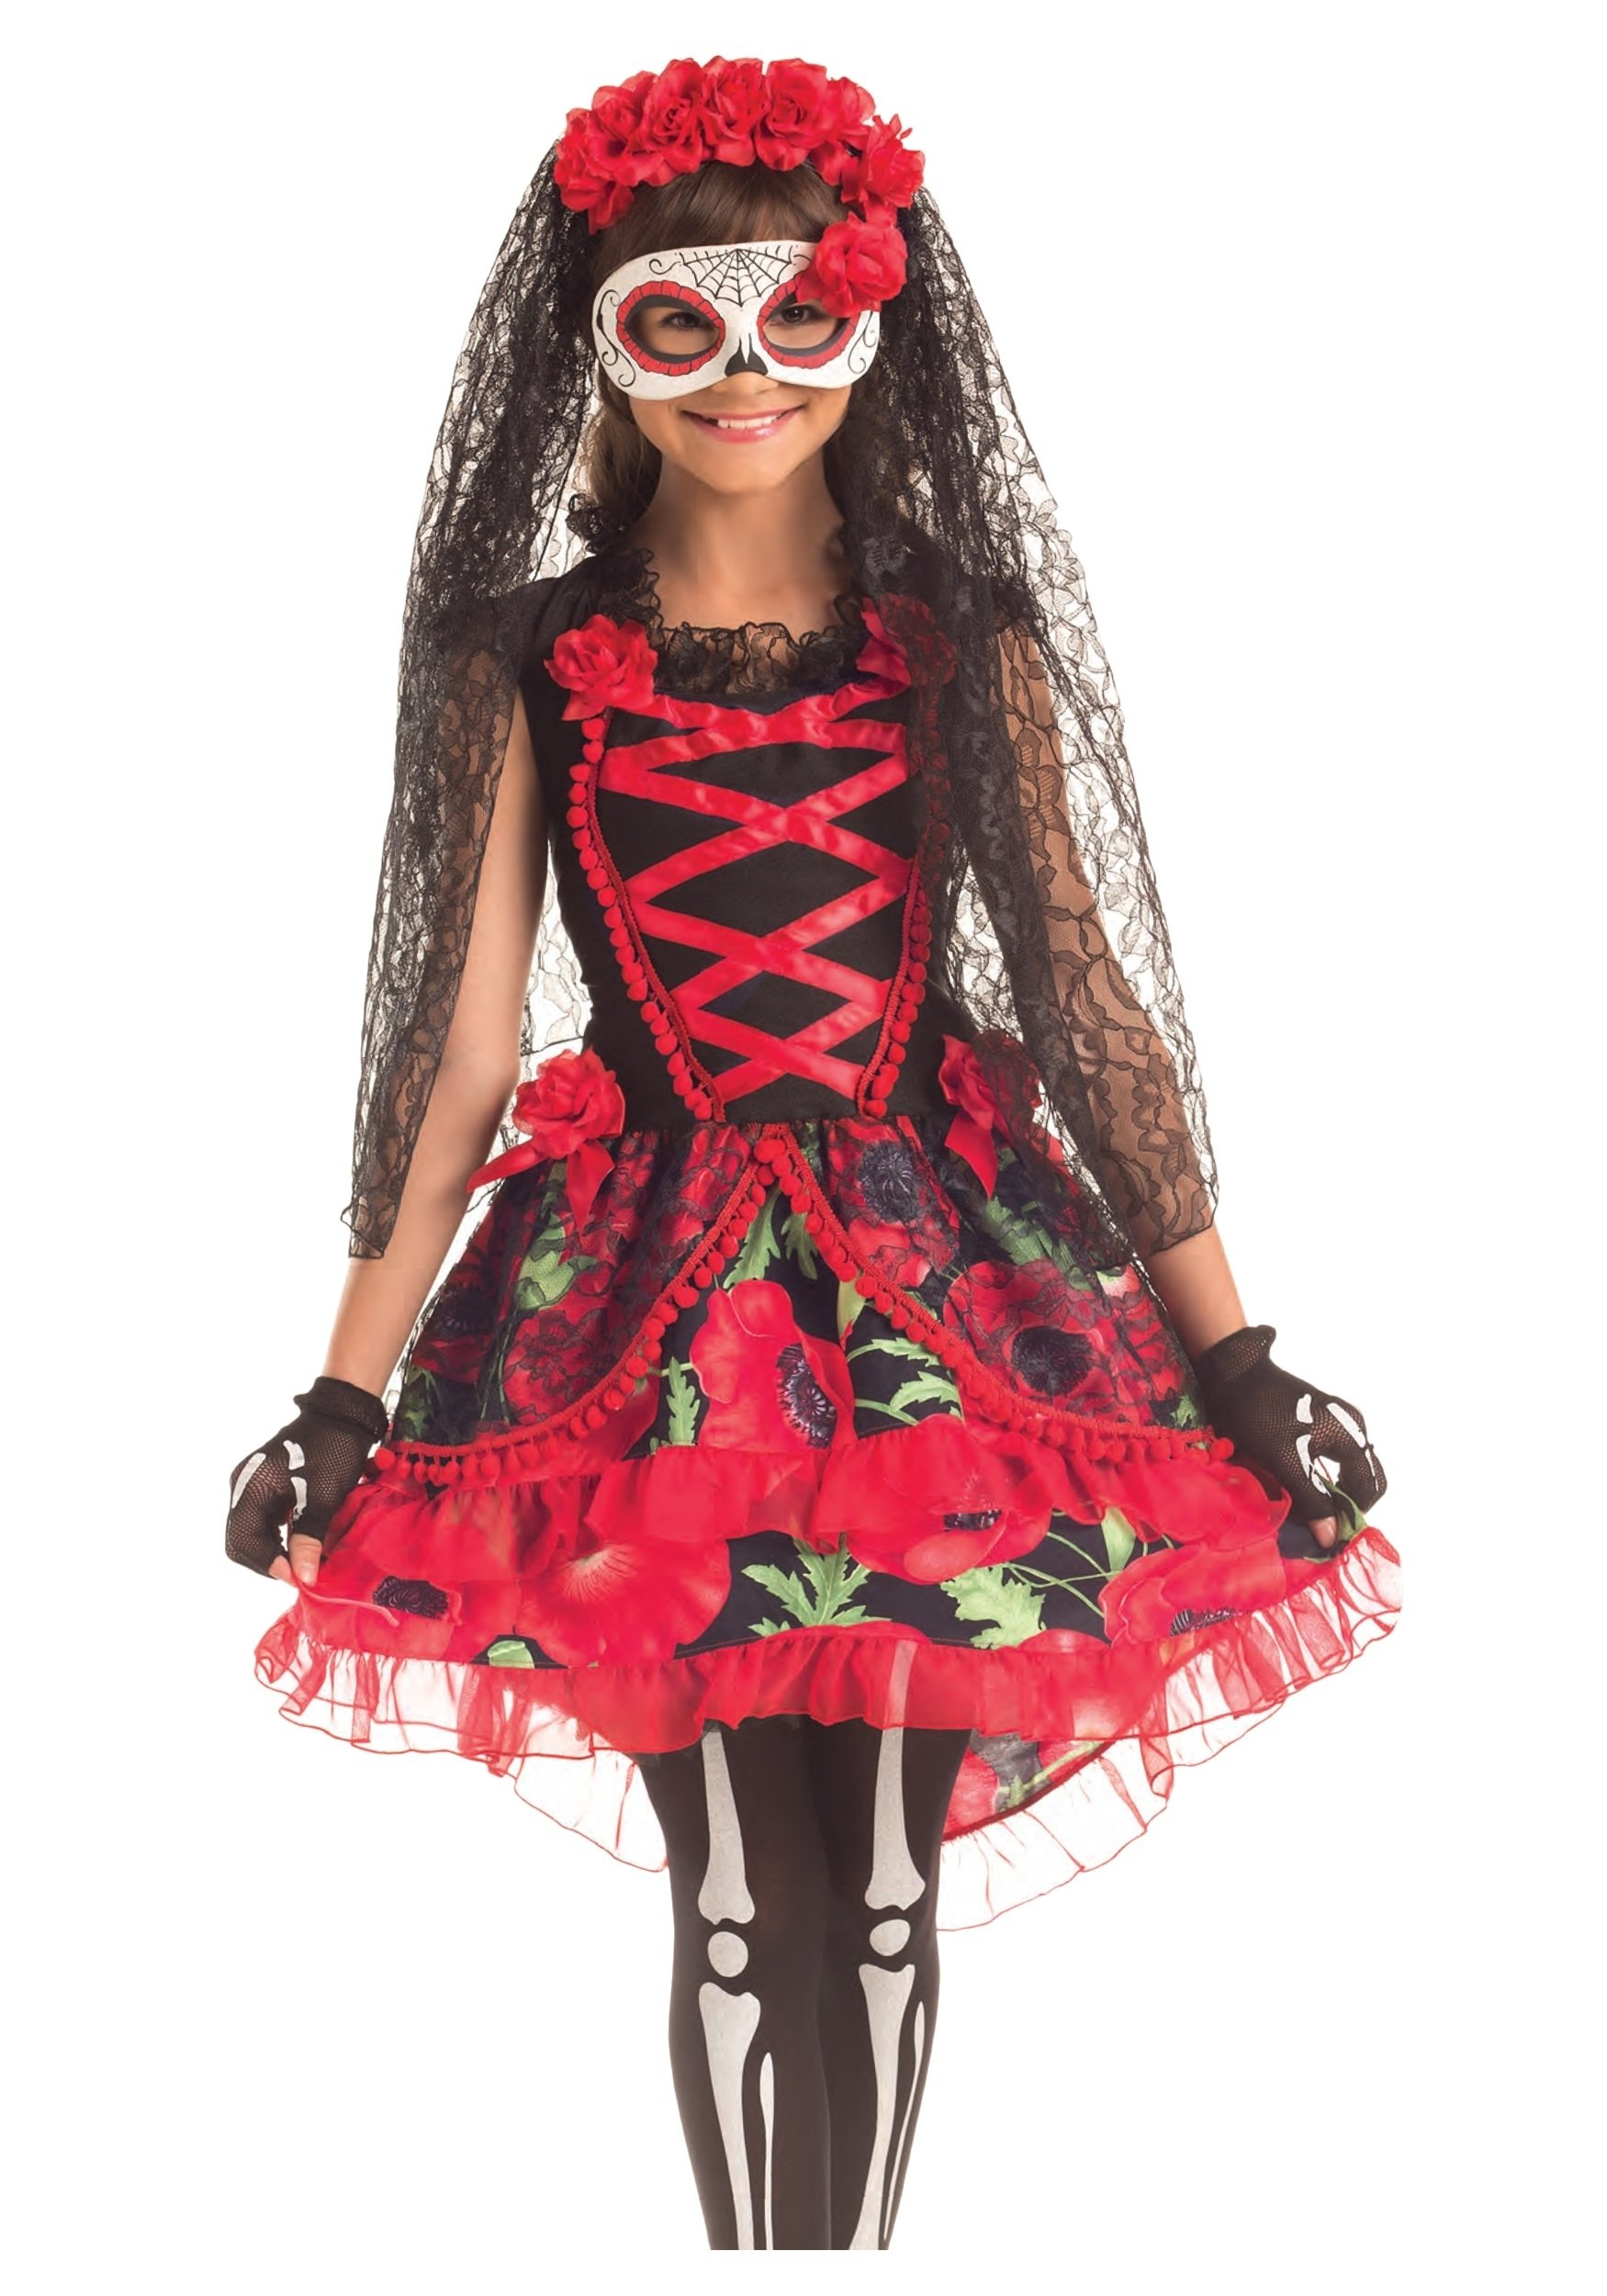 10 Great Day Of The Dead Halloween Costume Ideas child day of the dead senorita costume 2020